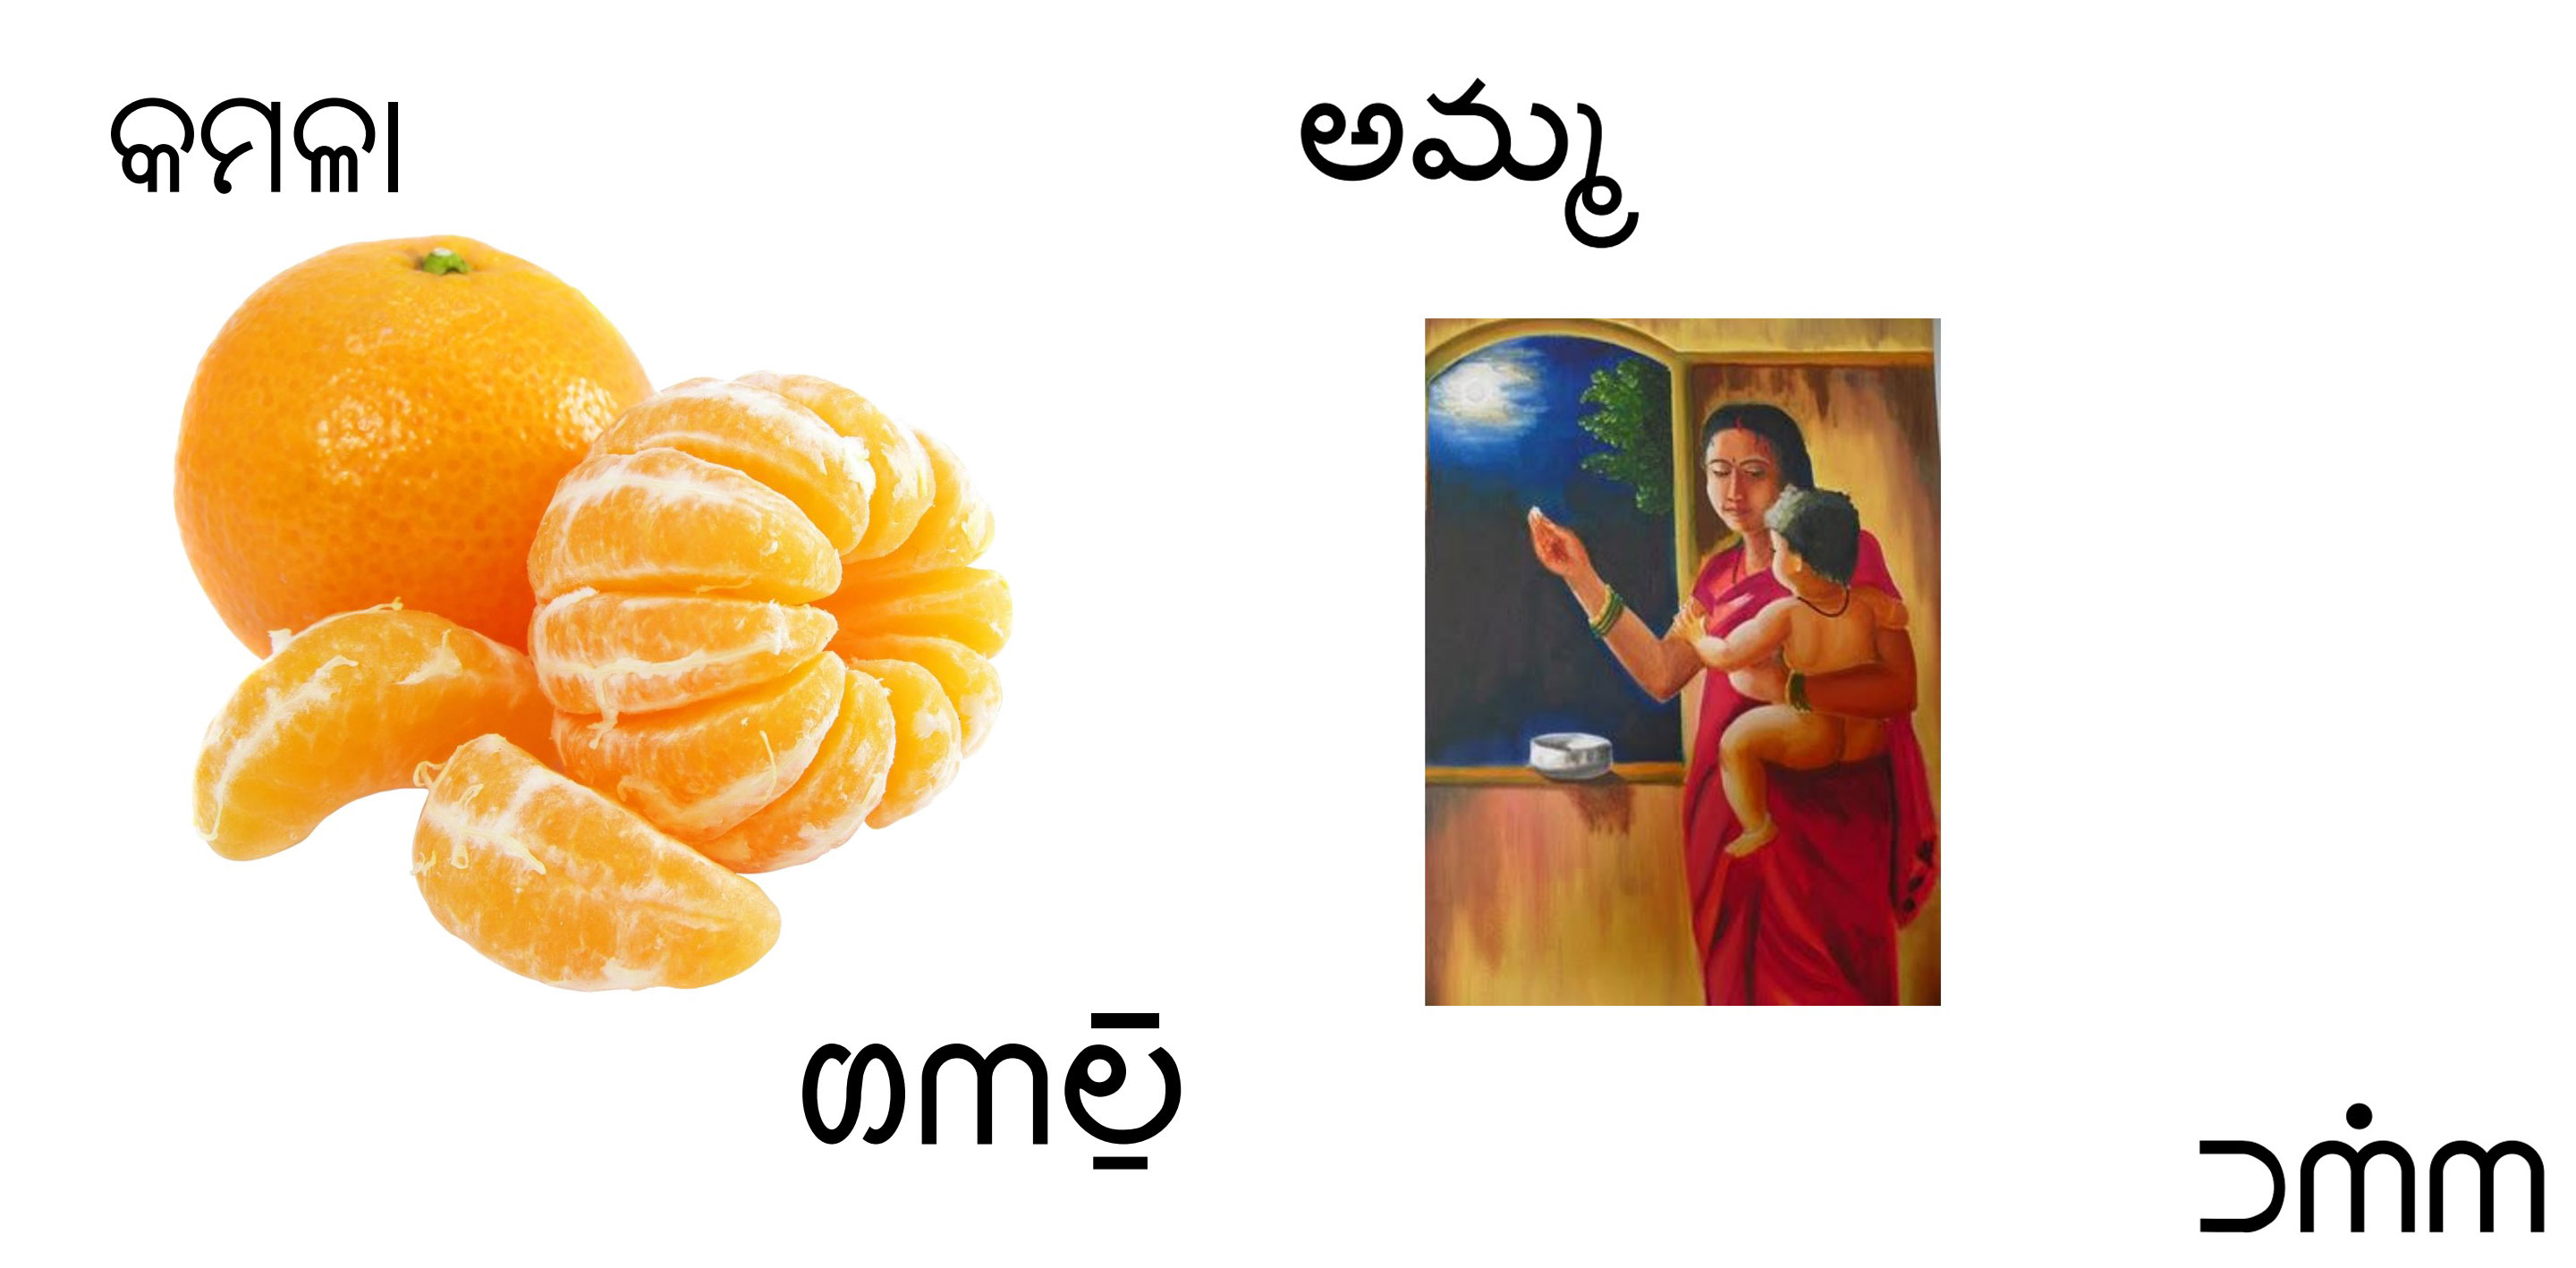 Screenshots from the Odia Primer and the Telugu Primer (words read 'Kamala' and 'Amma')